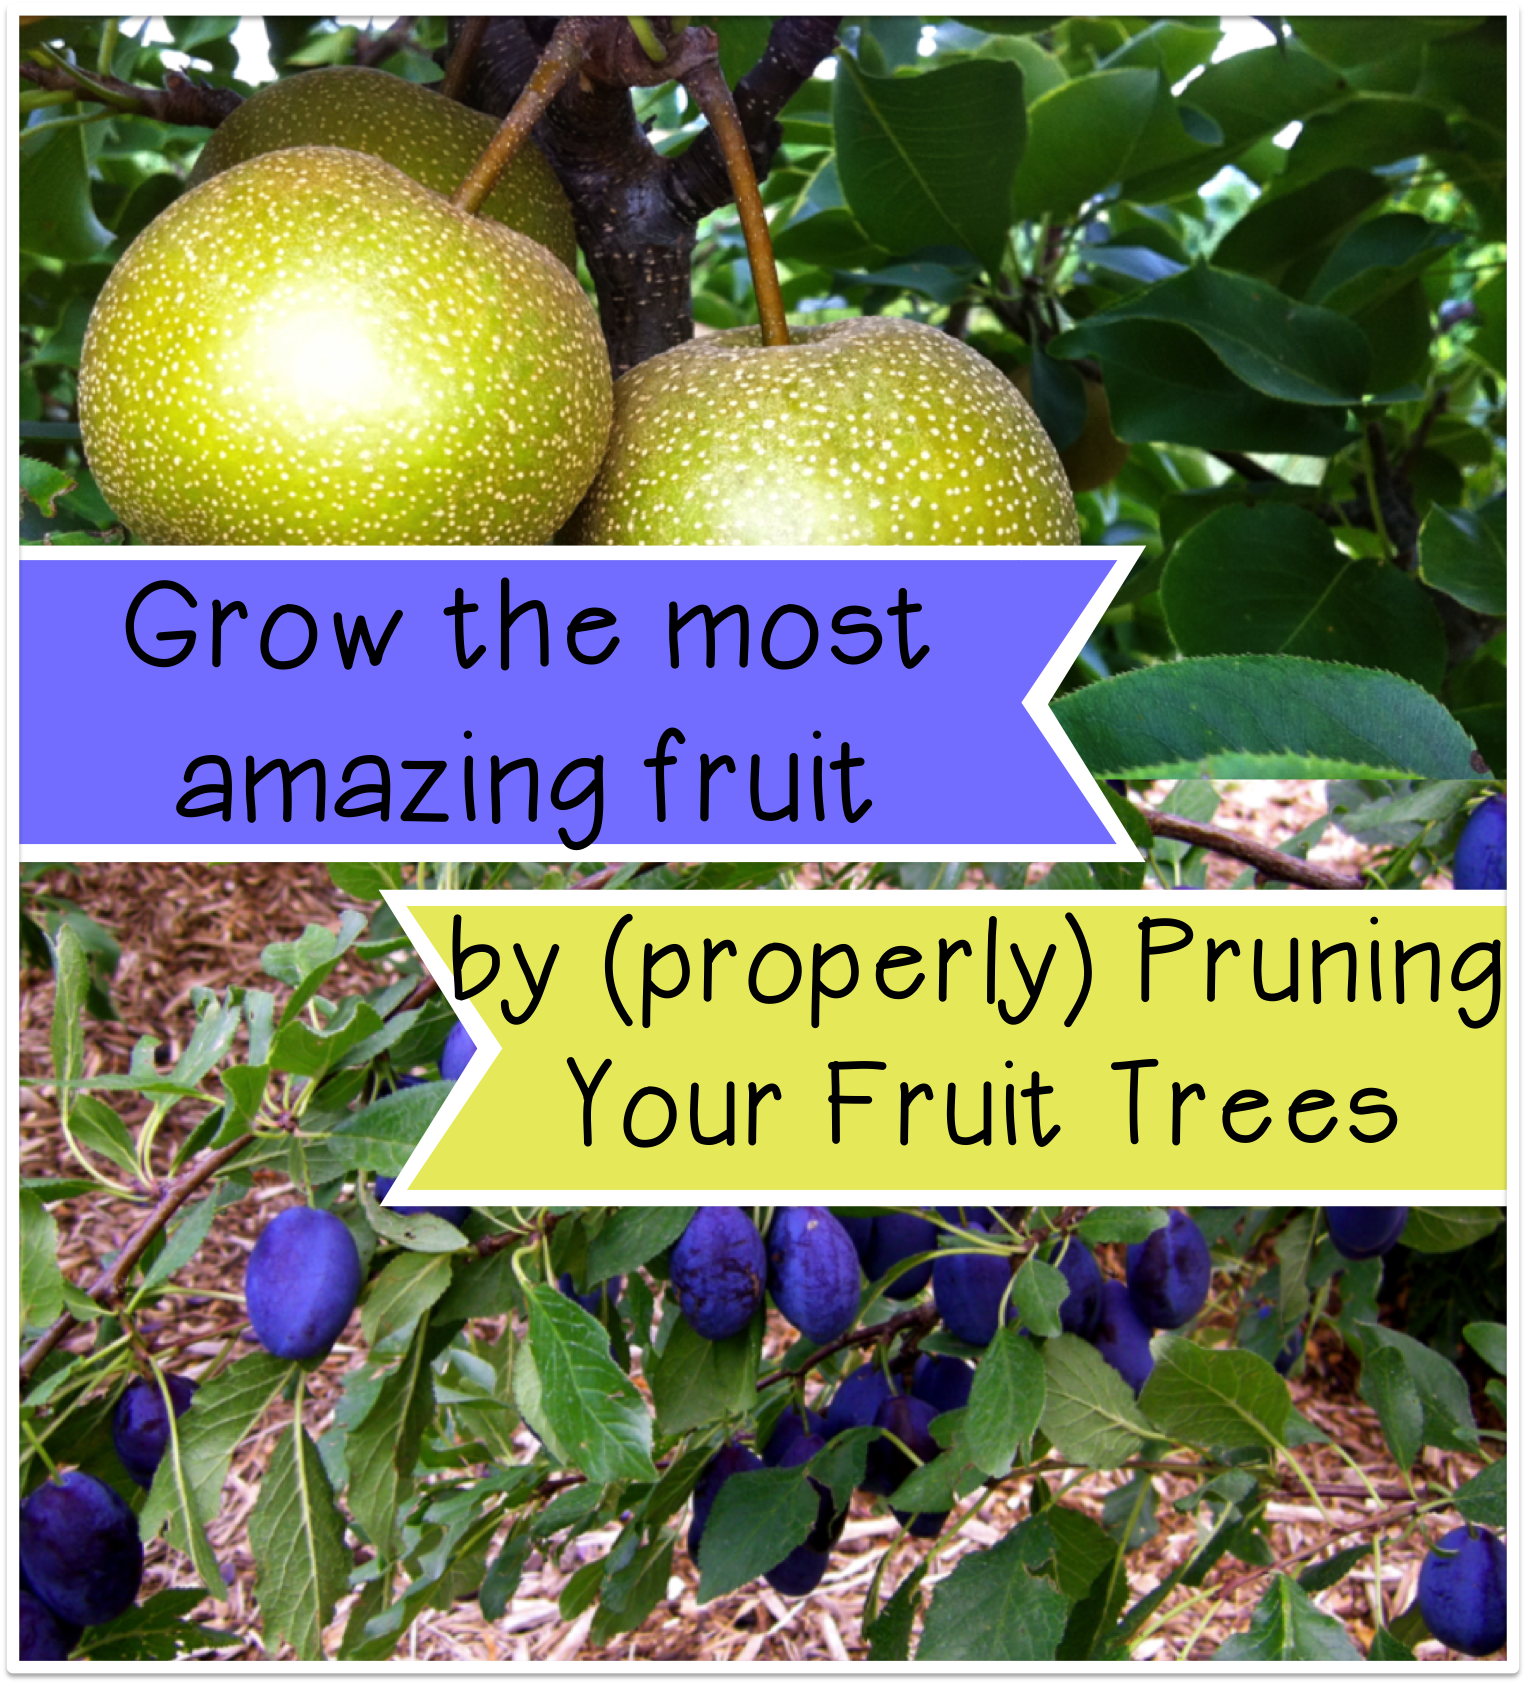 grow-the-most-amazing-fruit-by-properly-pruning-your-fruit-trees